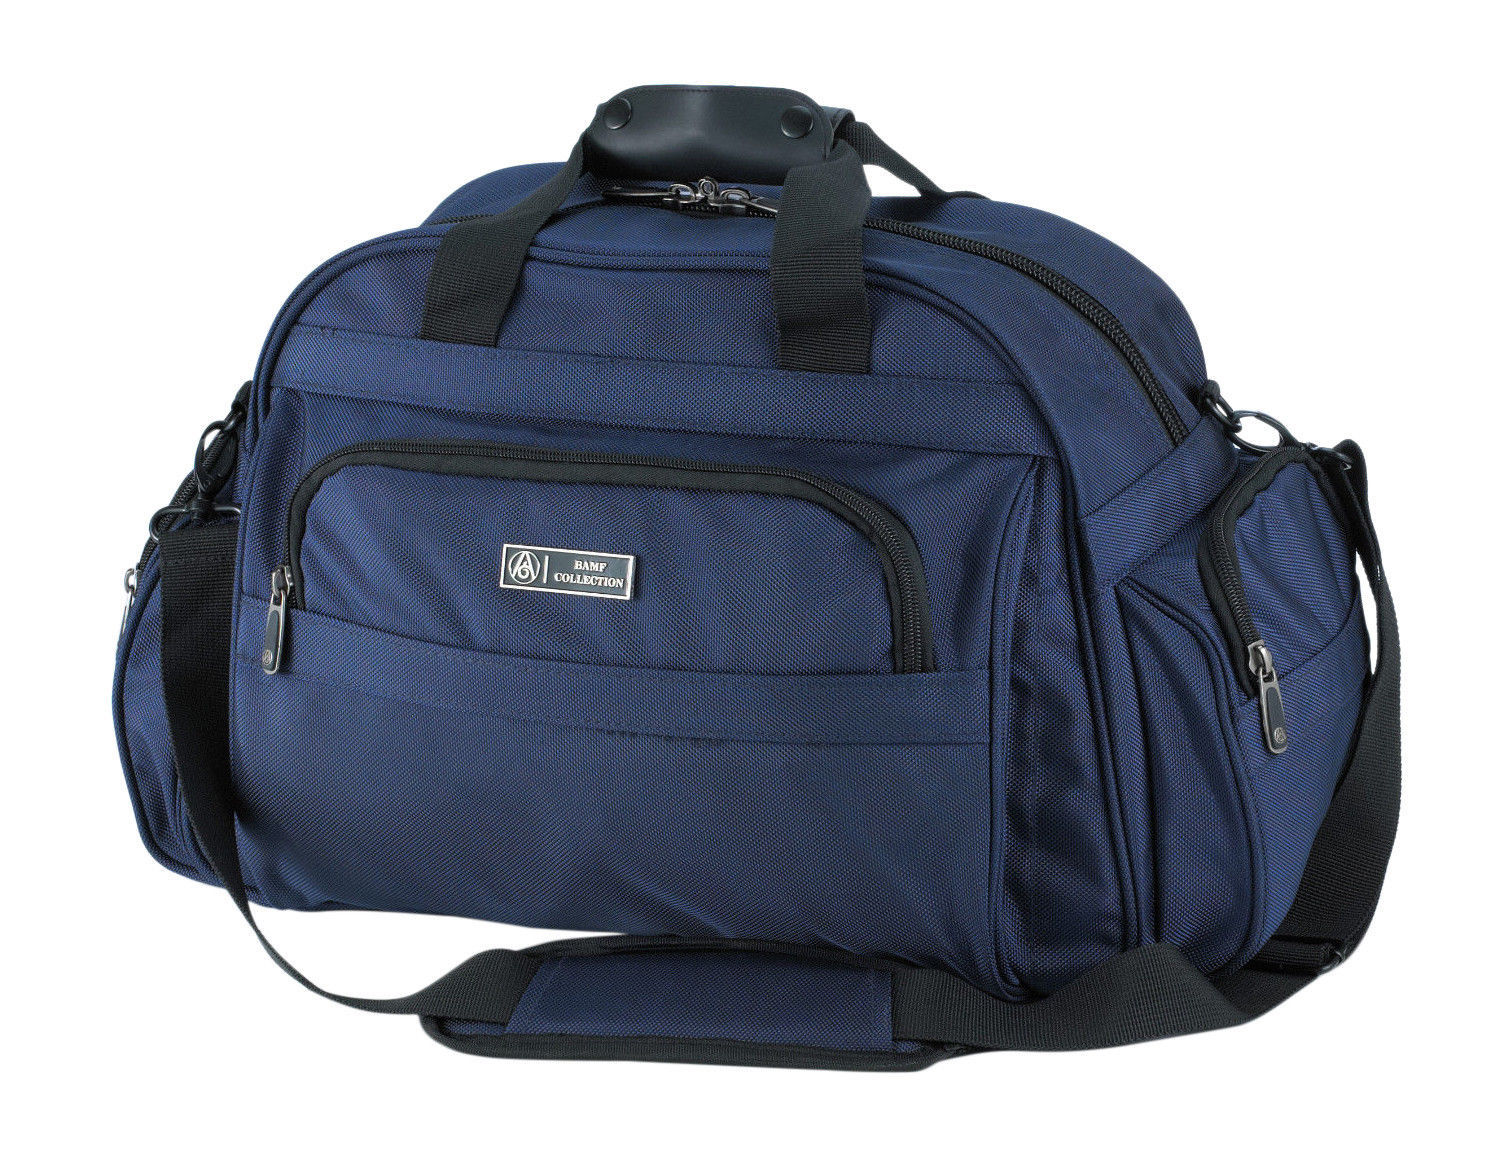 Primary image for BAMF Quality Collection Duffel bag,Travel Bag,Gym bag,Carry on luggage Blue